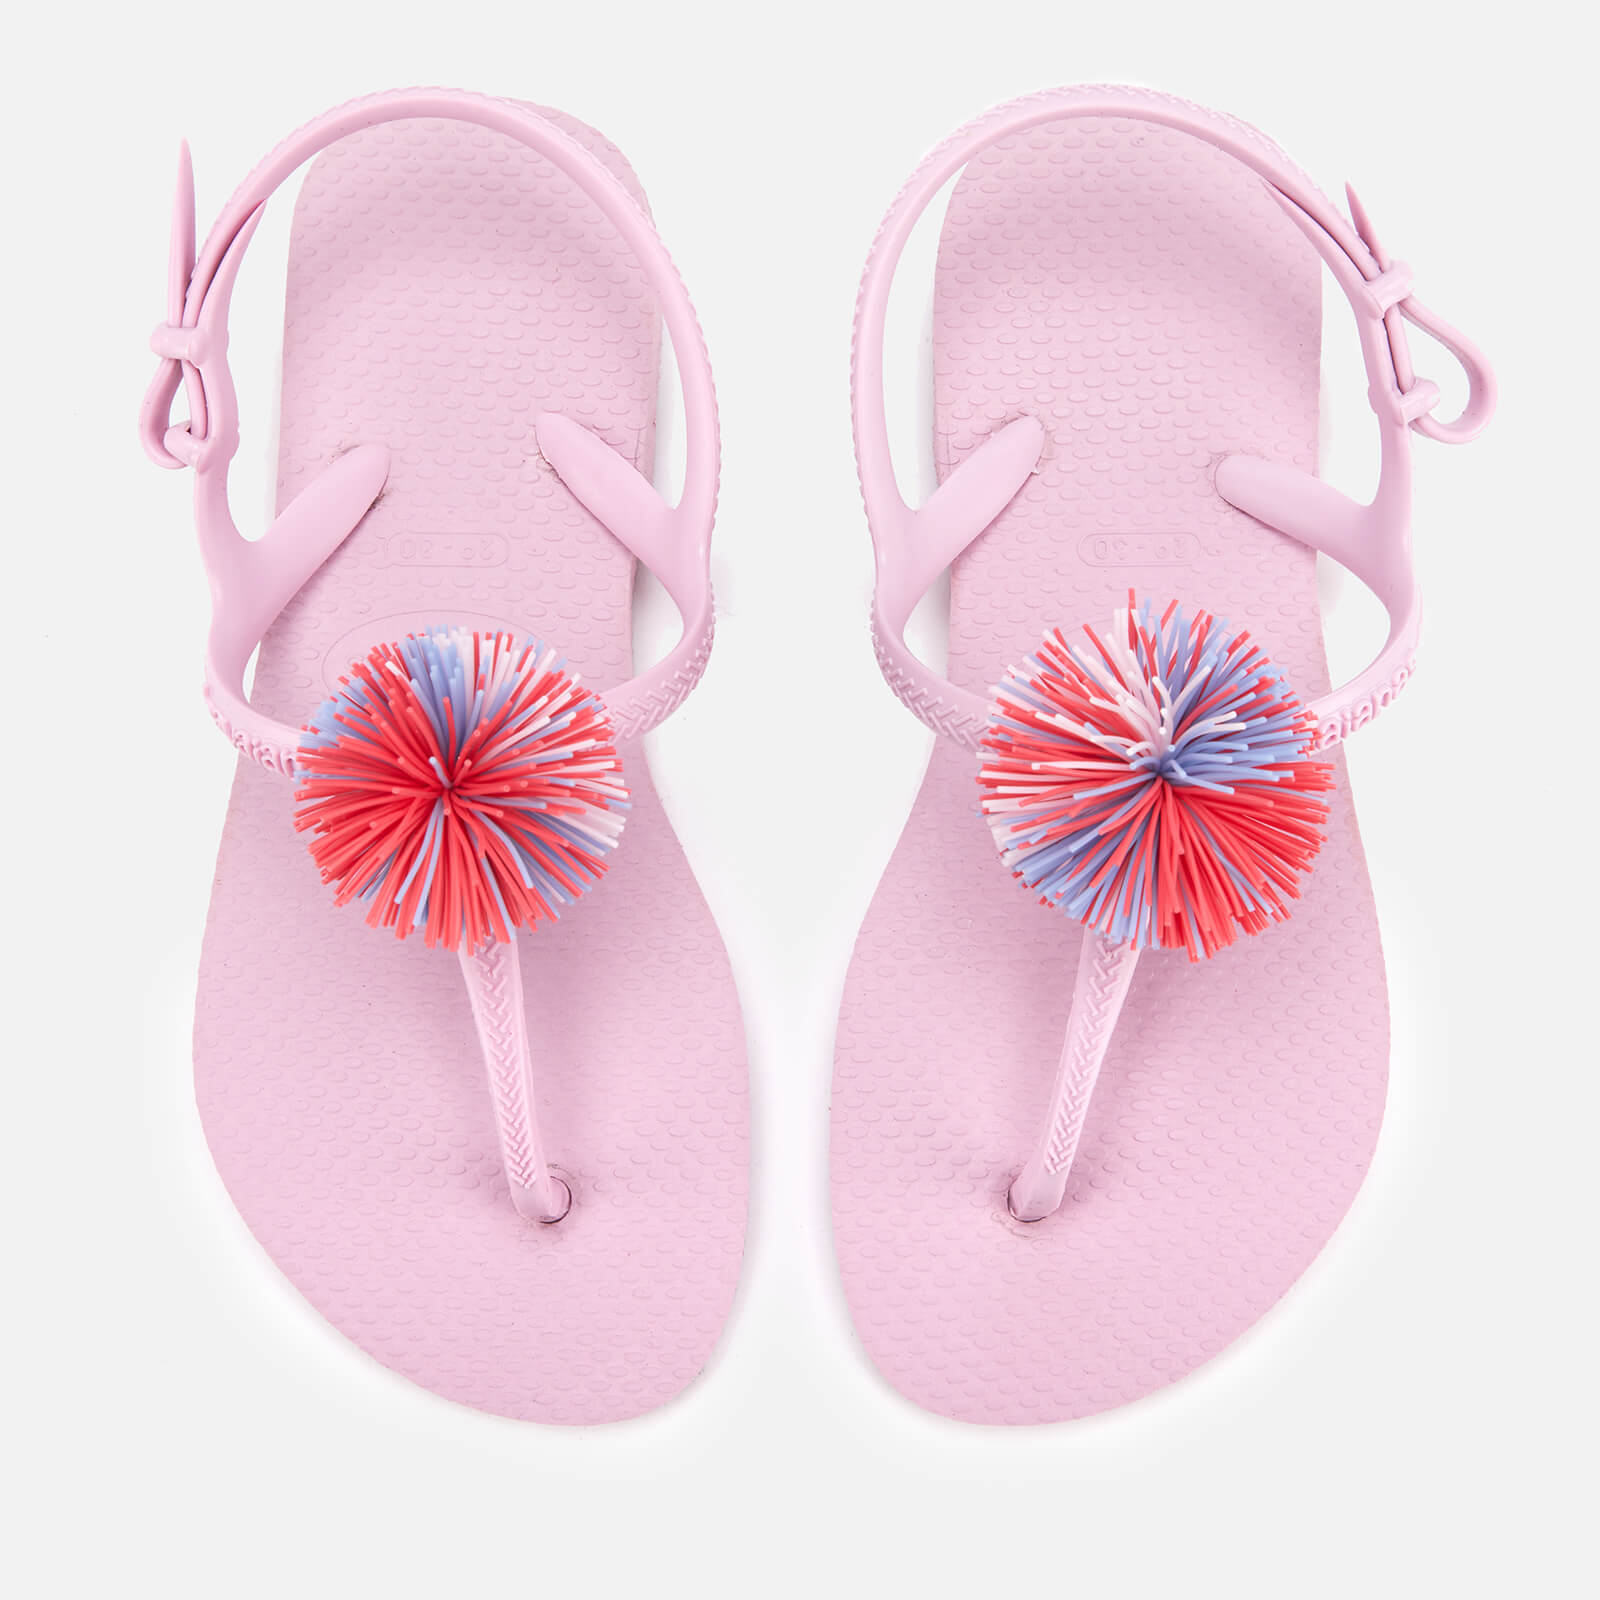 877336c40391f Havaianas Kids  Freedom SL Pompom Sandals - Rose Quartz Junior Clothing